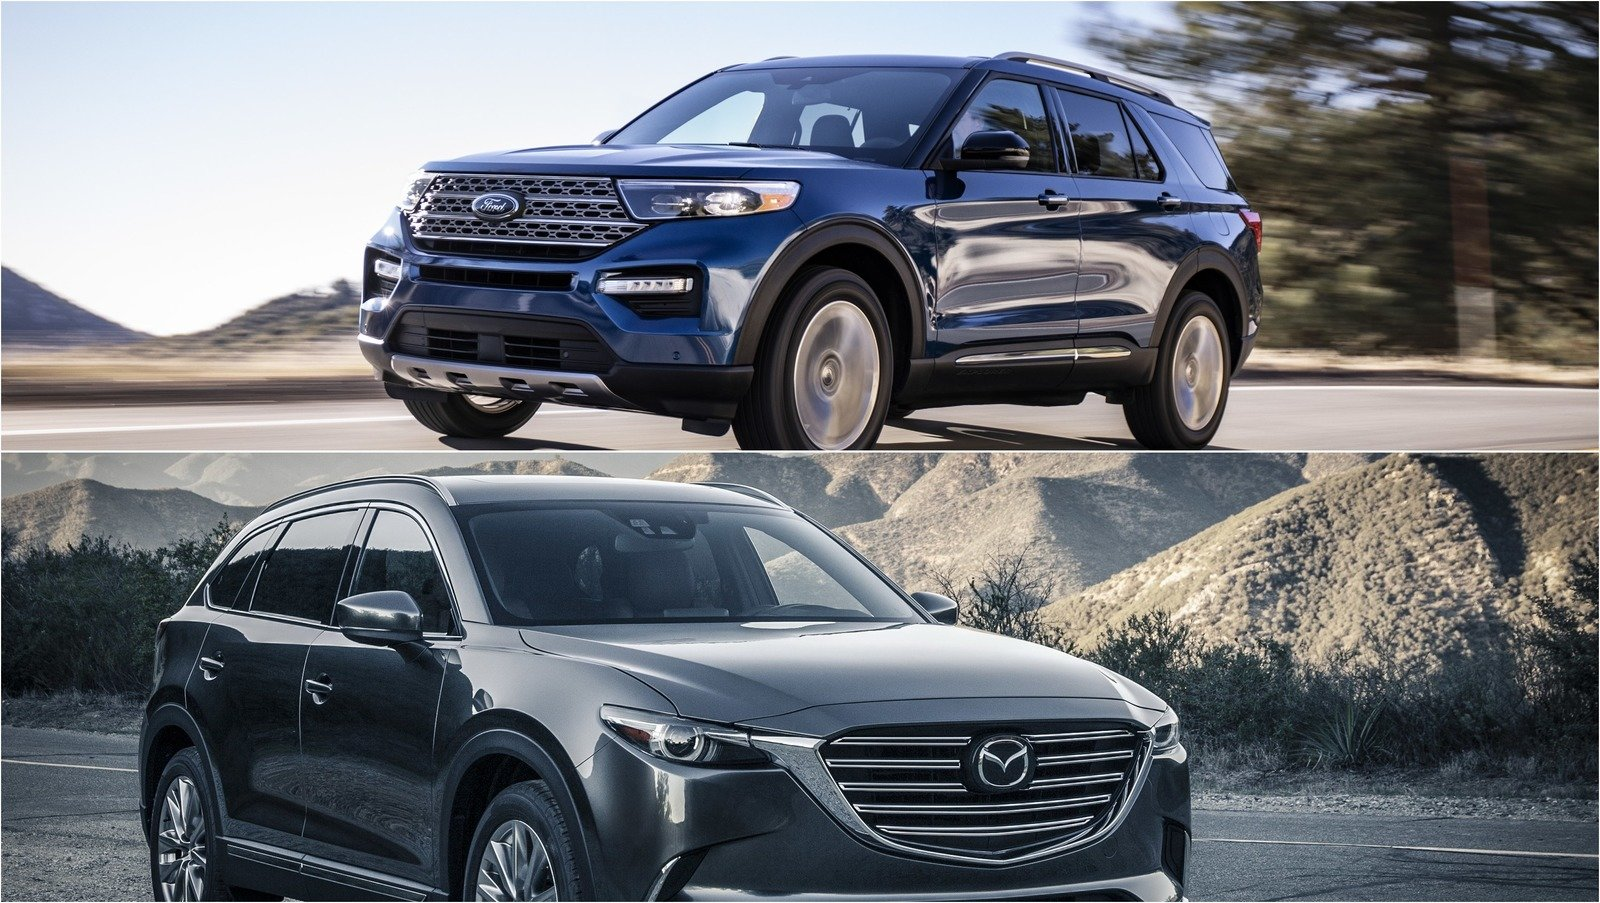 48 The Best 2020 Mazda CX 9 Performance and New Engine